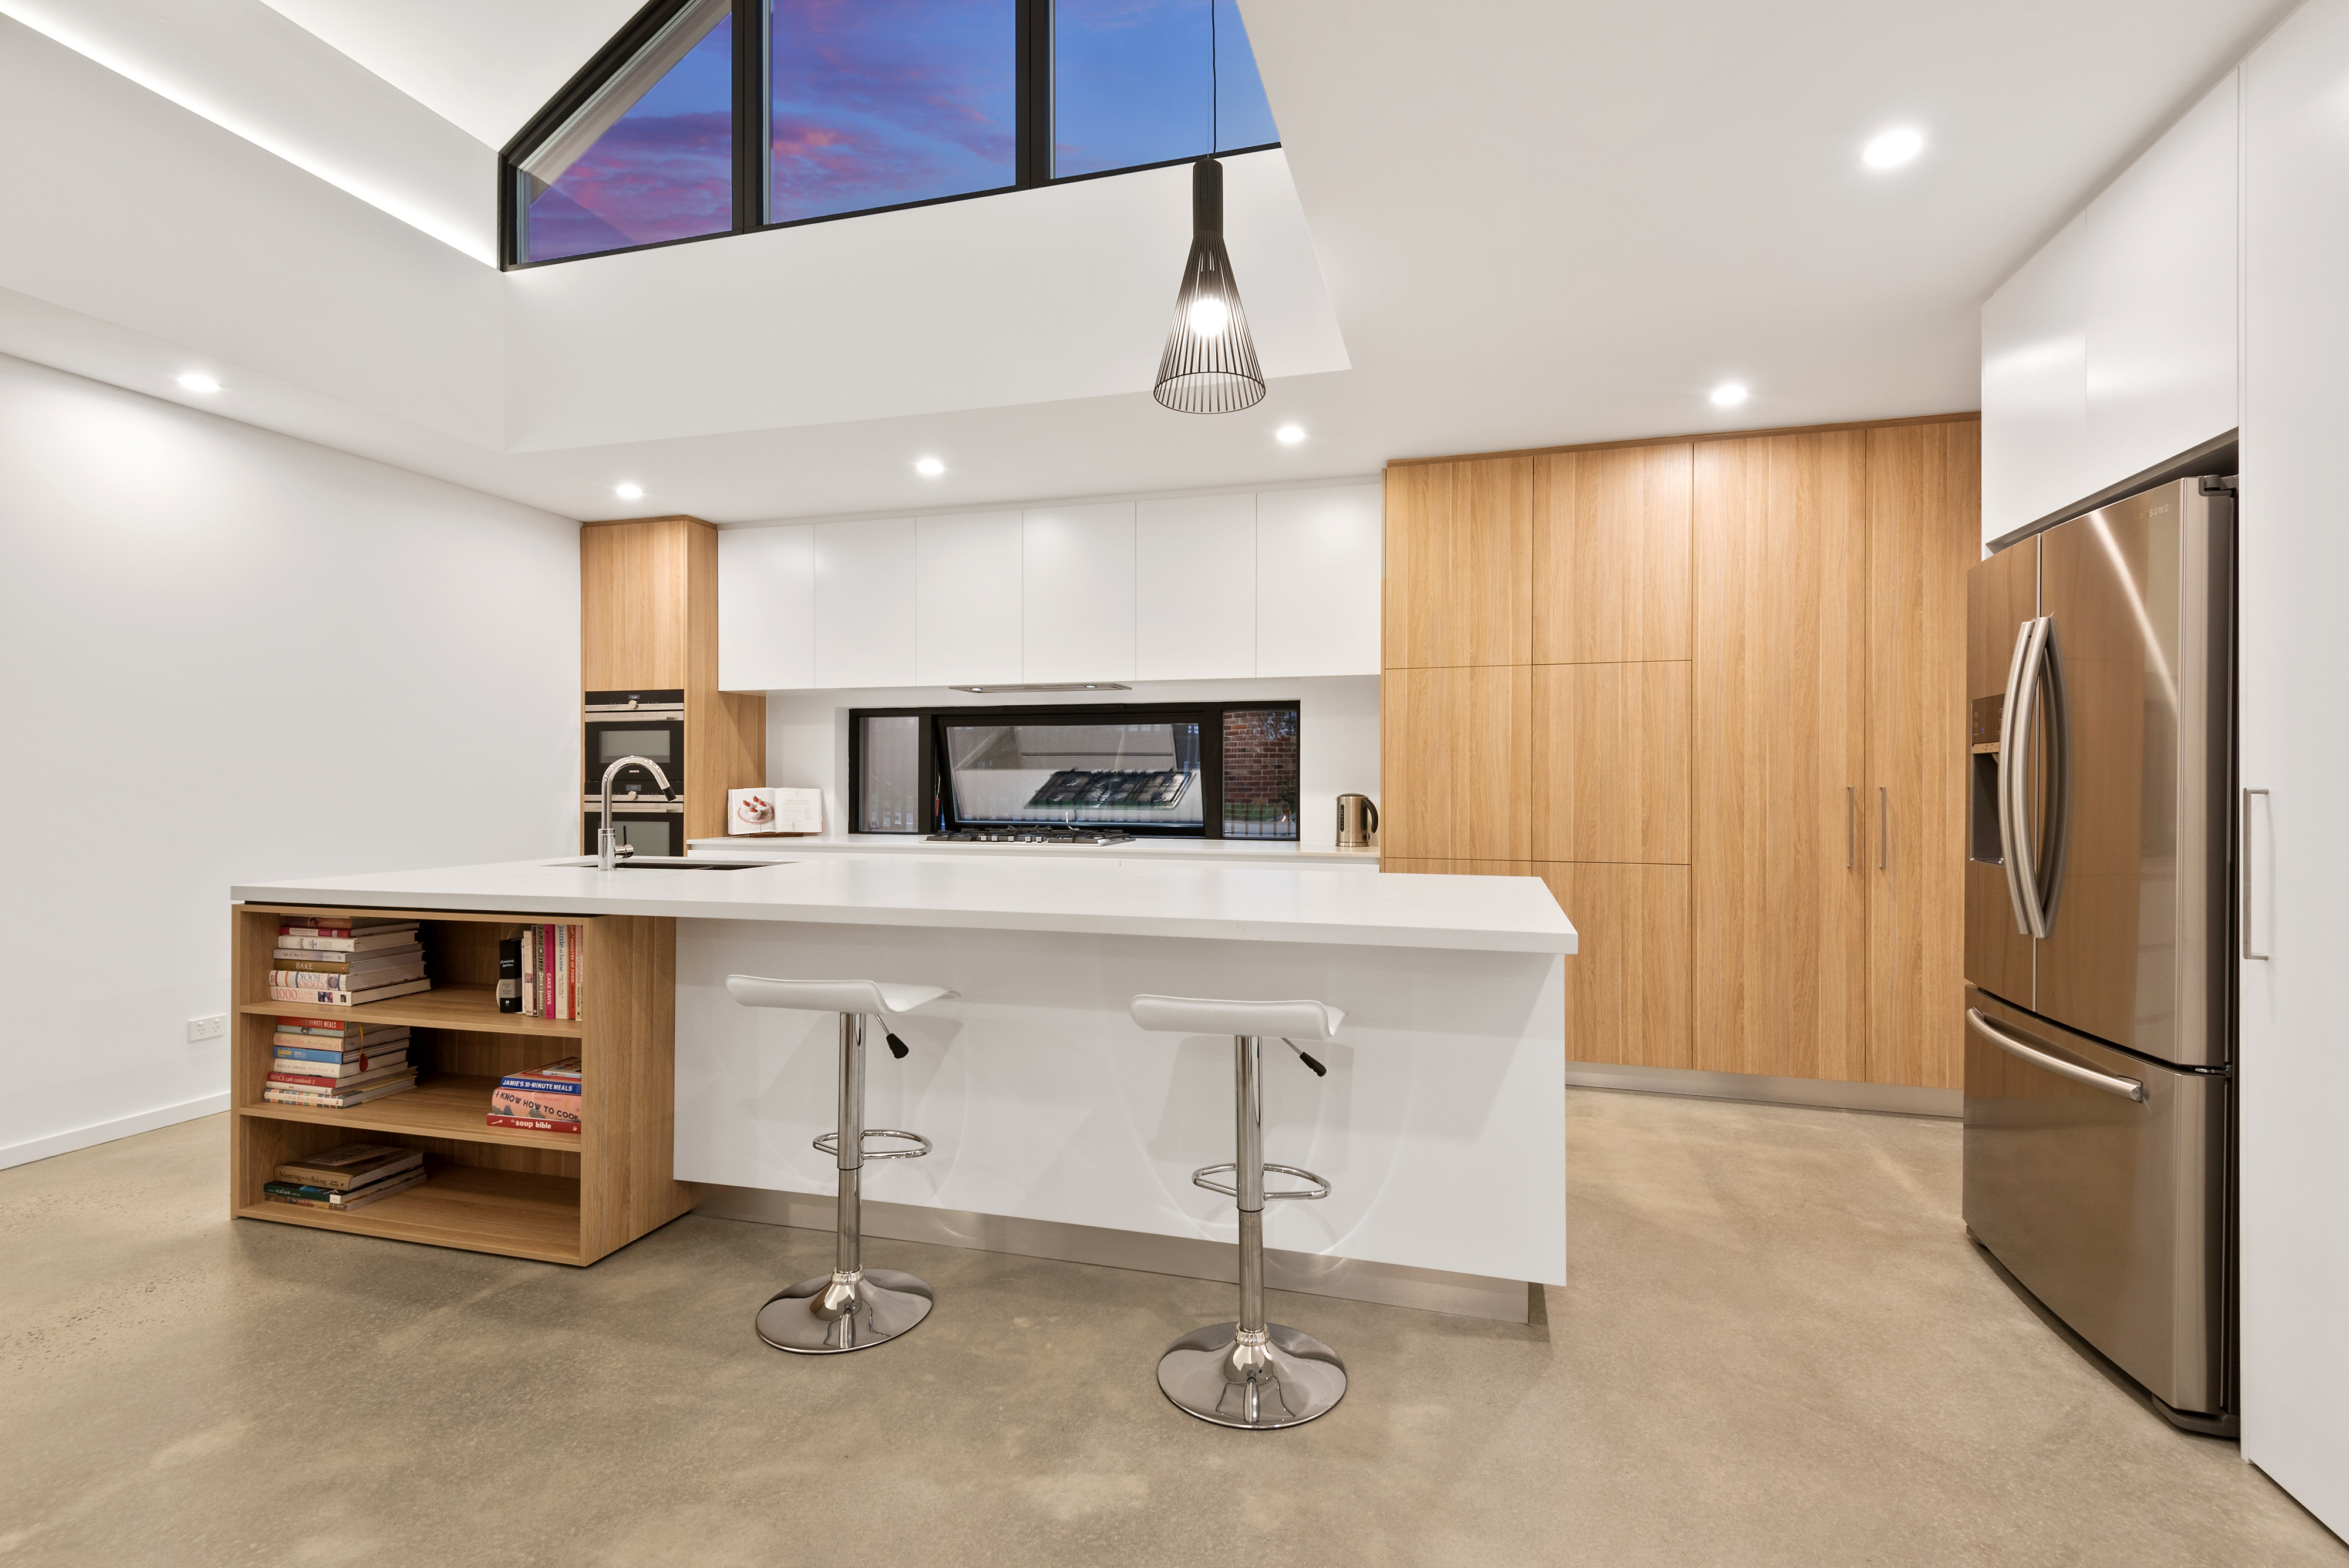 A Unique Vaulted Ceiling and Clerestory Windows Bring in the Light